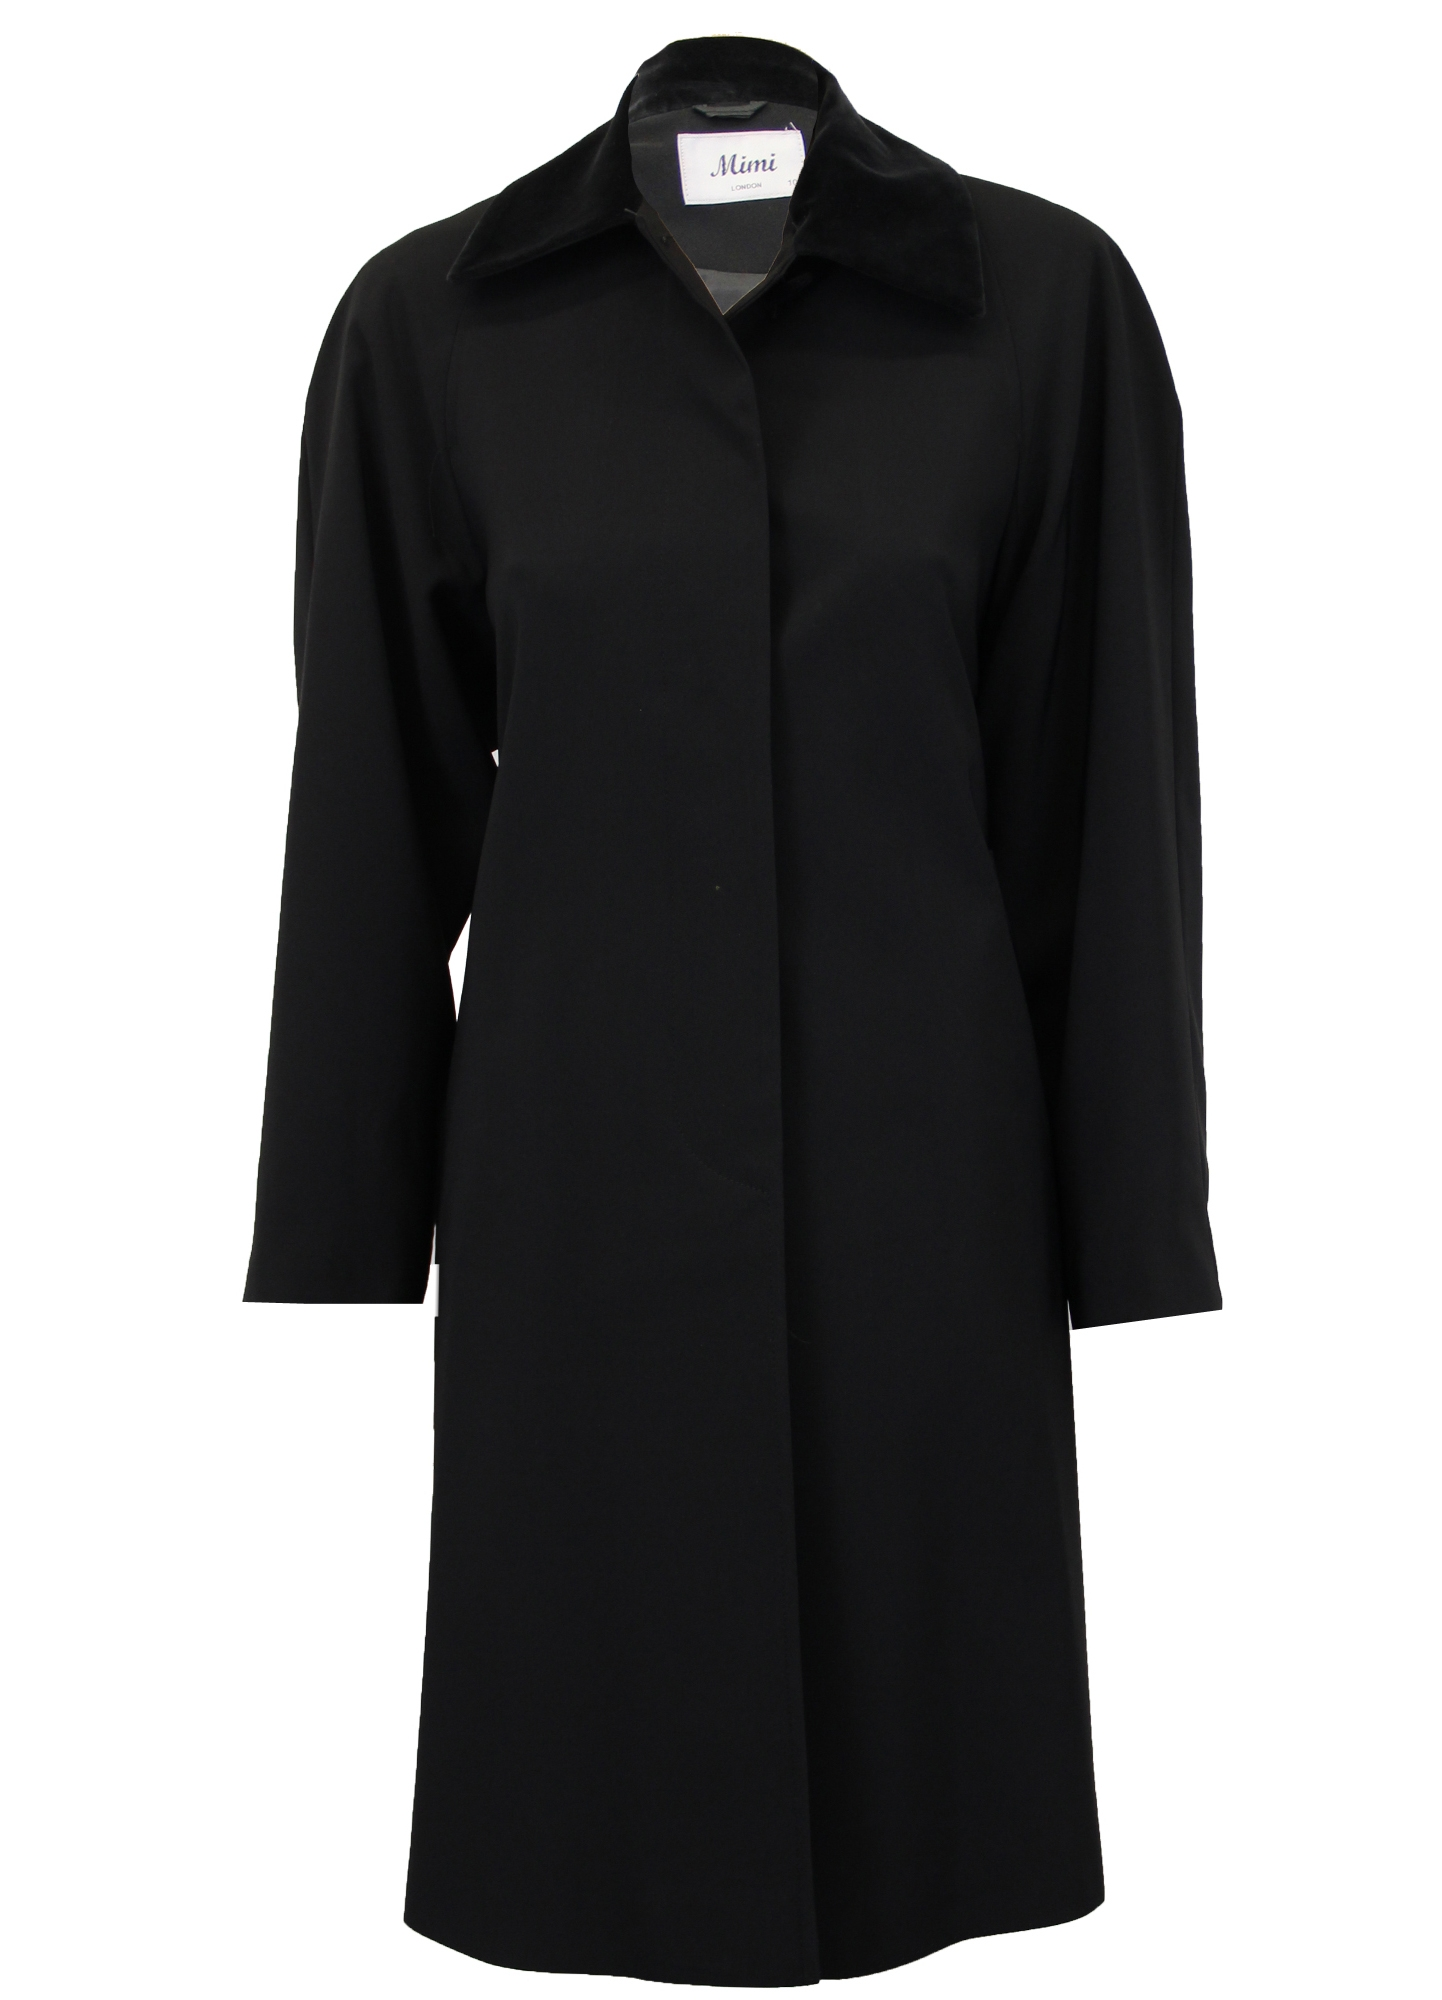 winter coat to wear with black jeans outfit